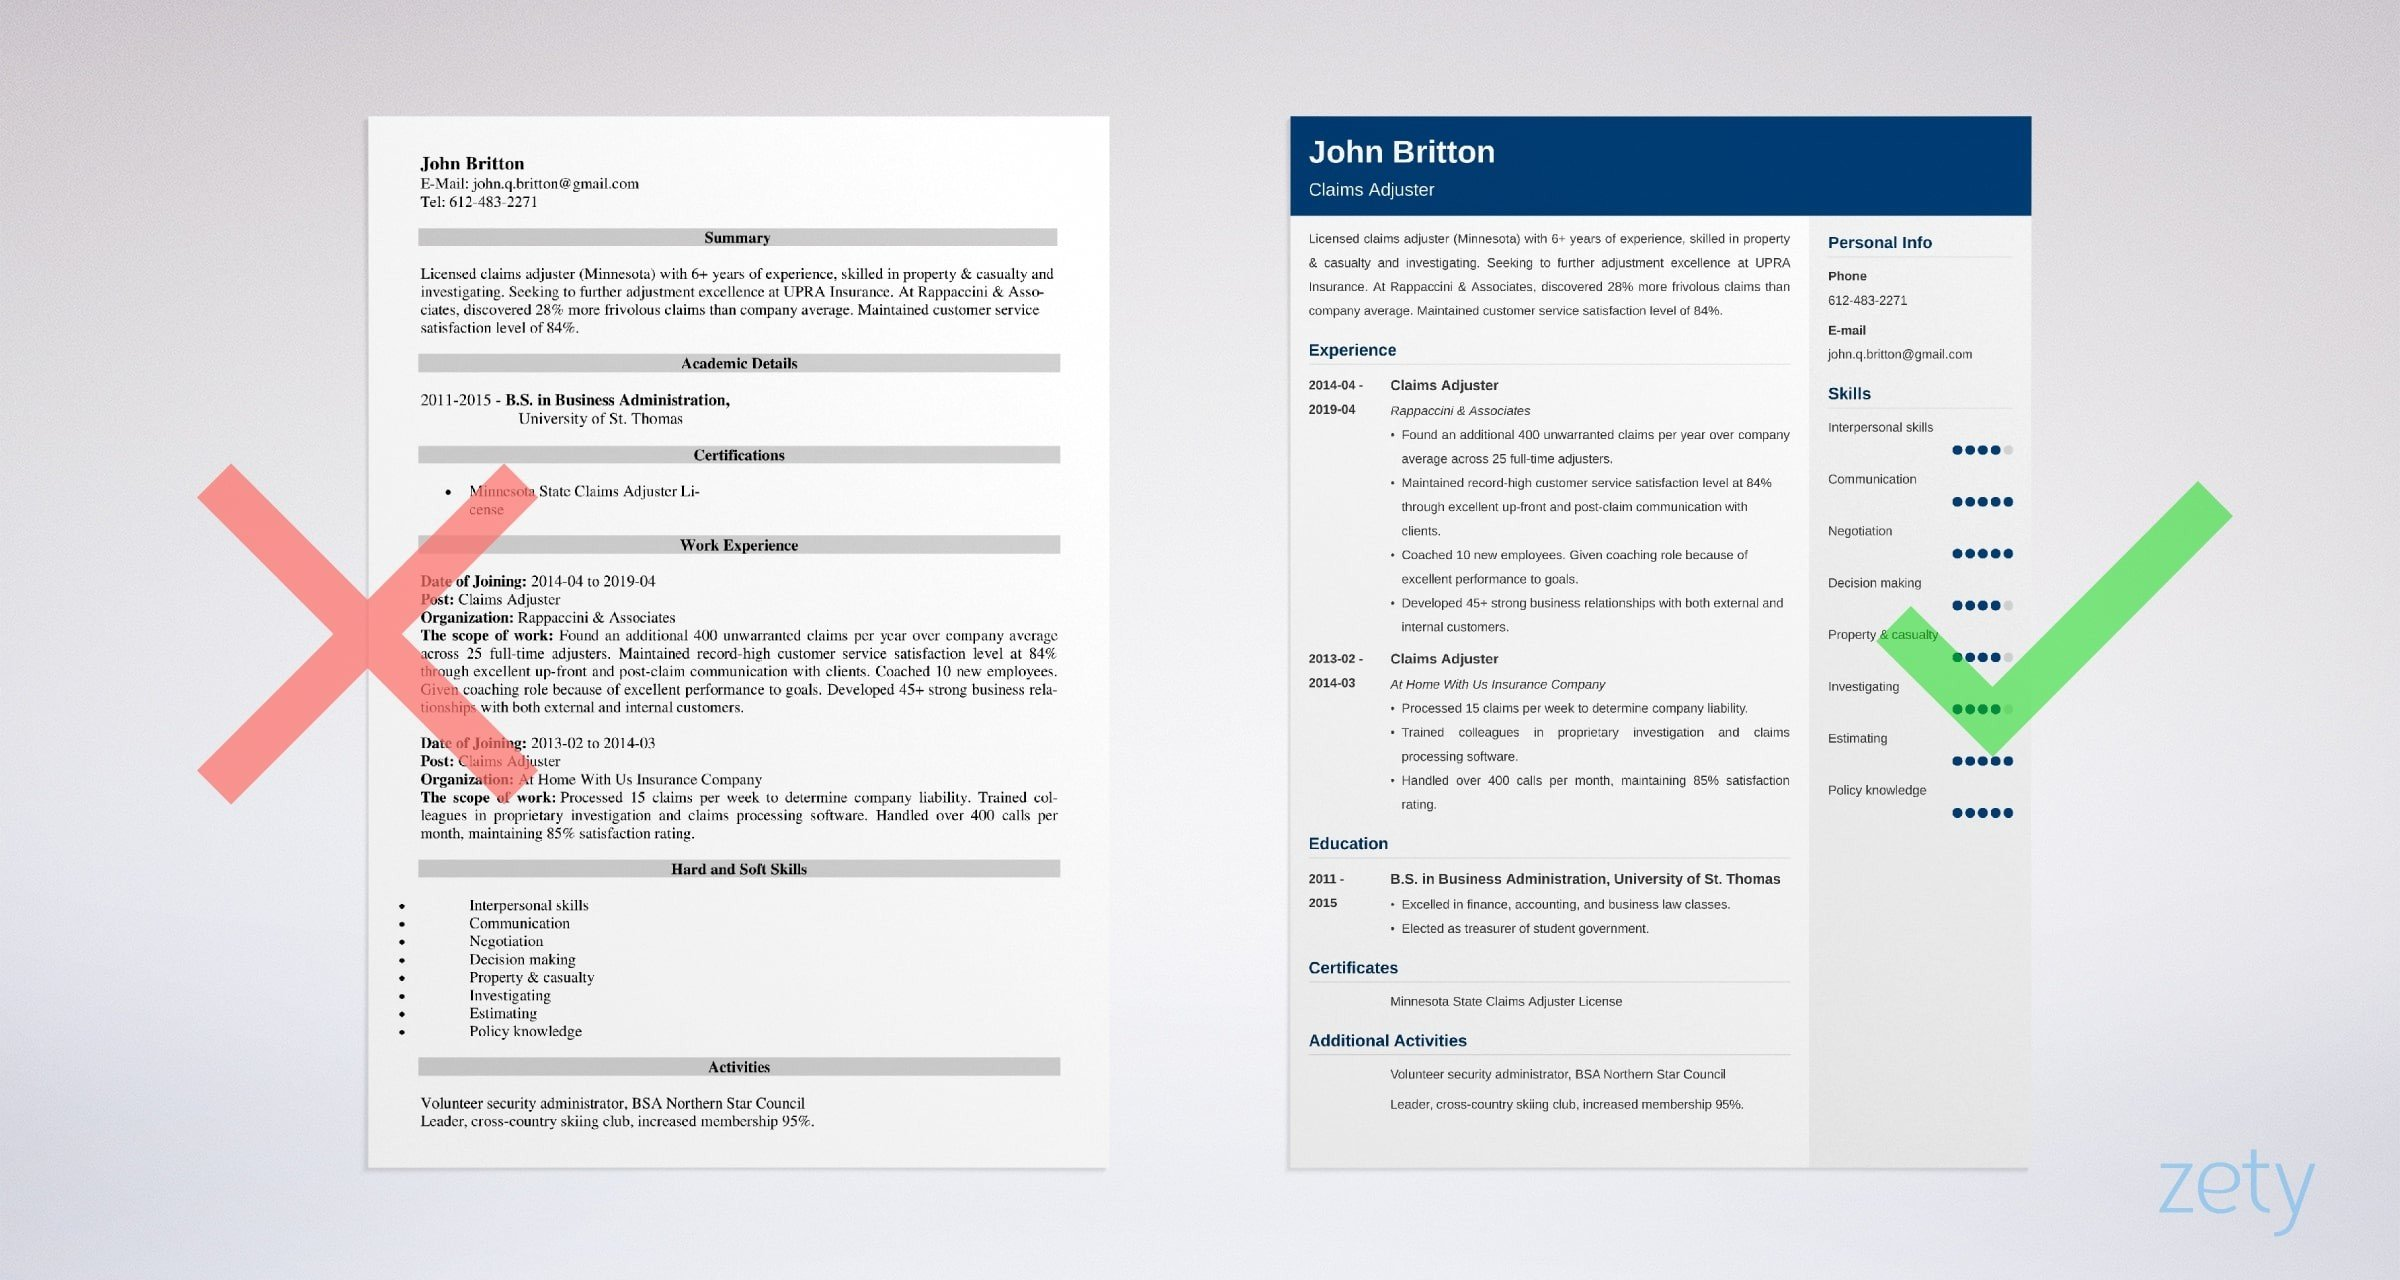 insurance claims adjuster resume sample with skills